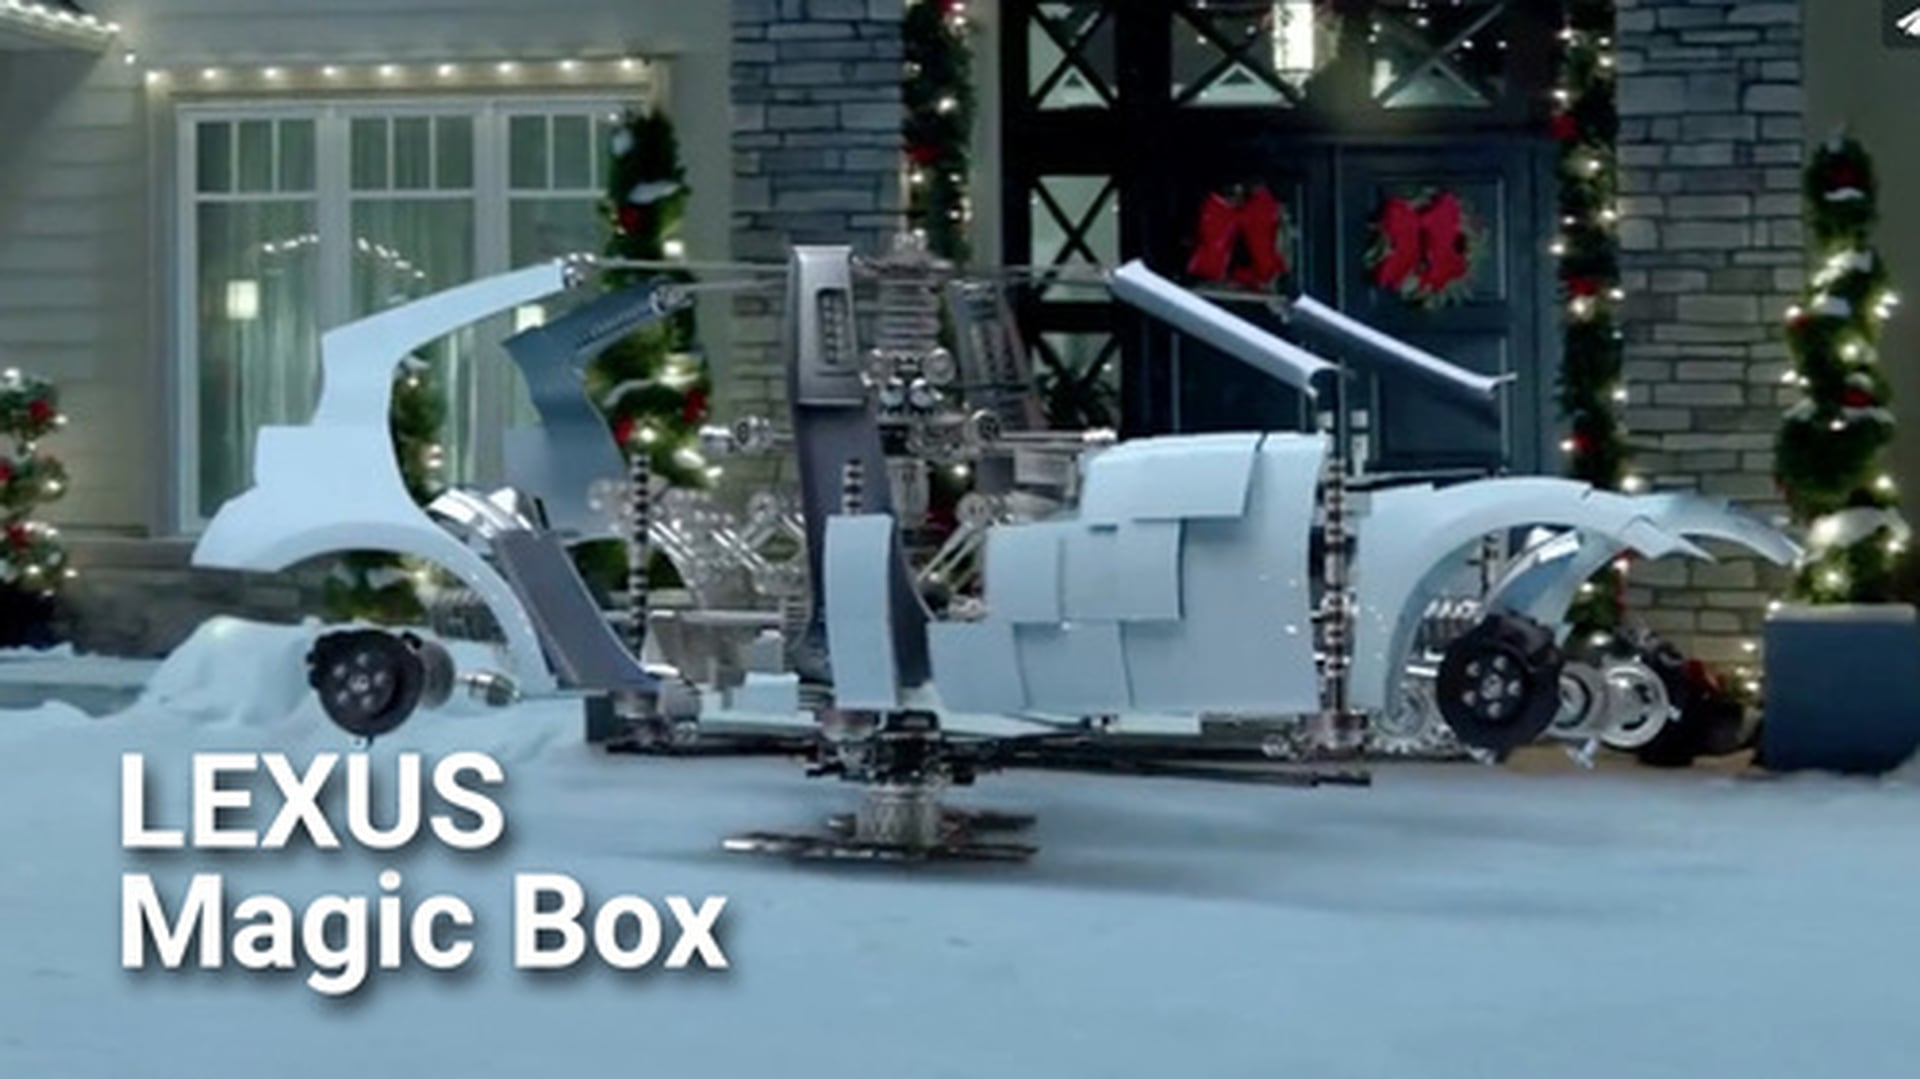 Lexus – Magic Box